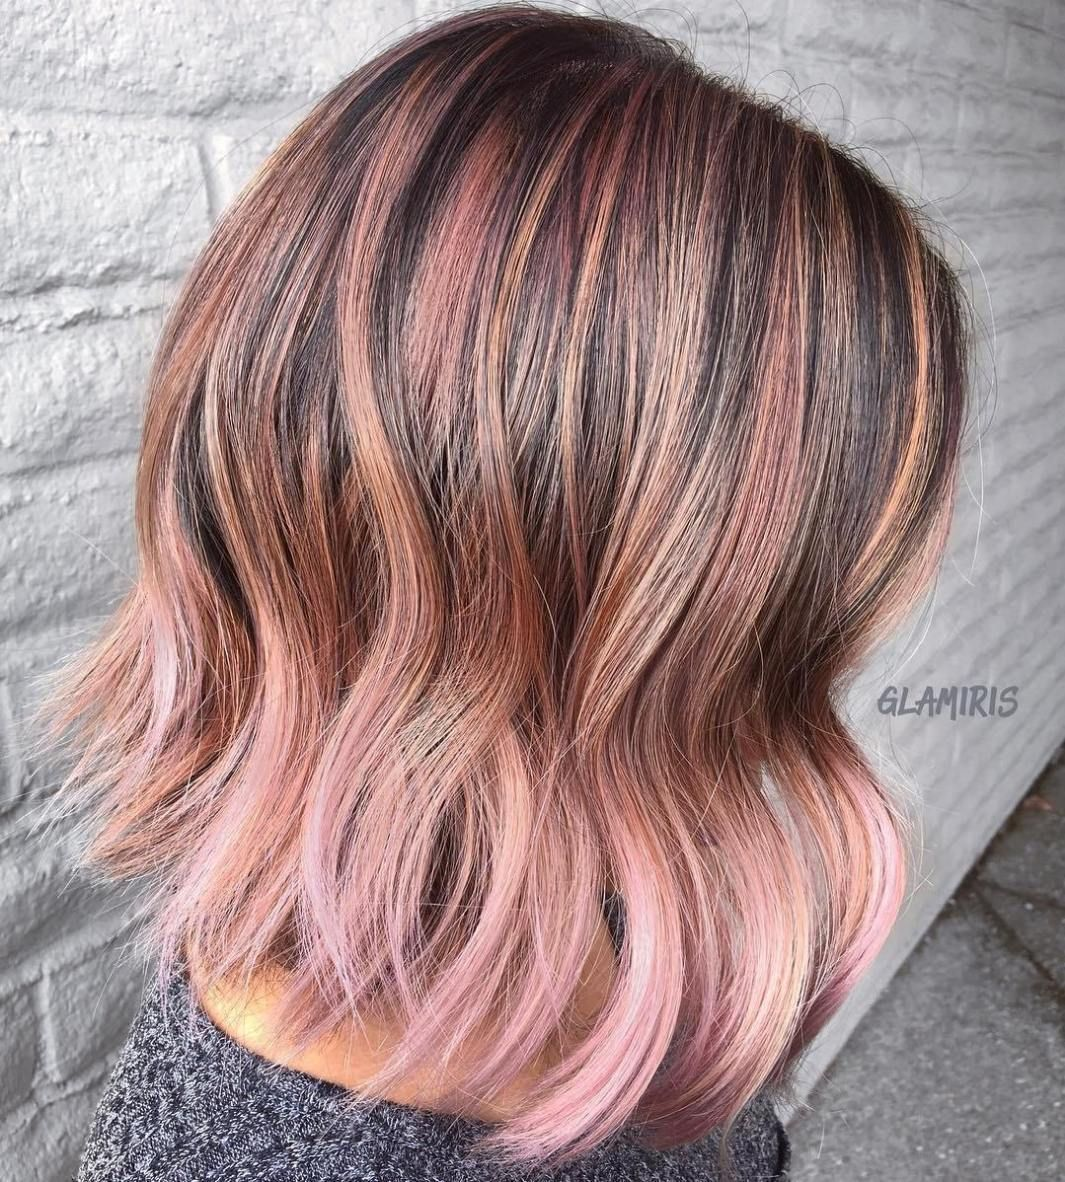 40 Ideas Of Pink Highlights For Major Inspiration In 2020 Hair